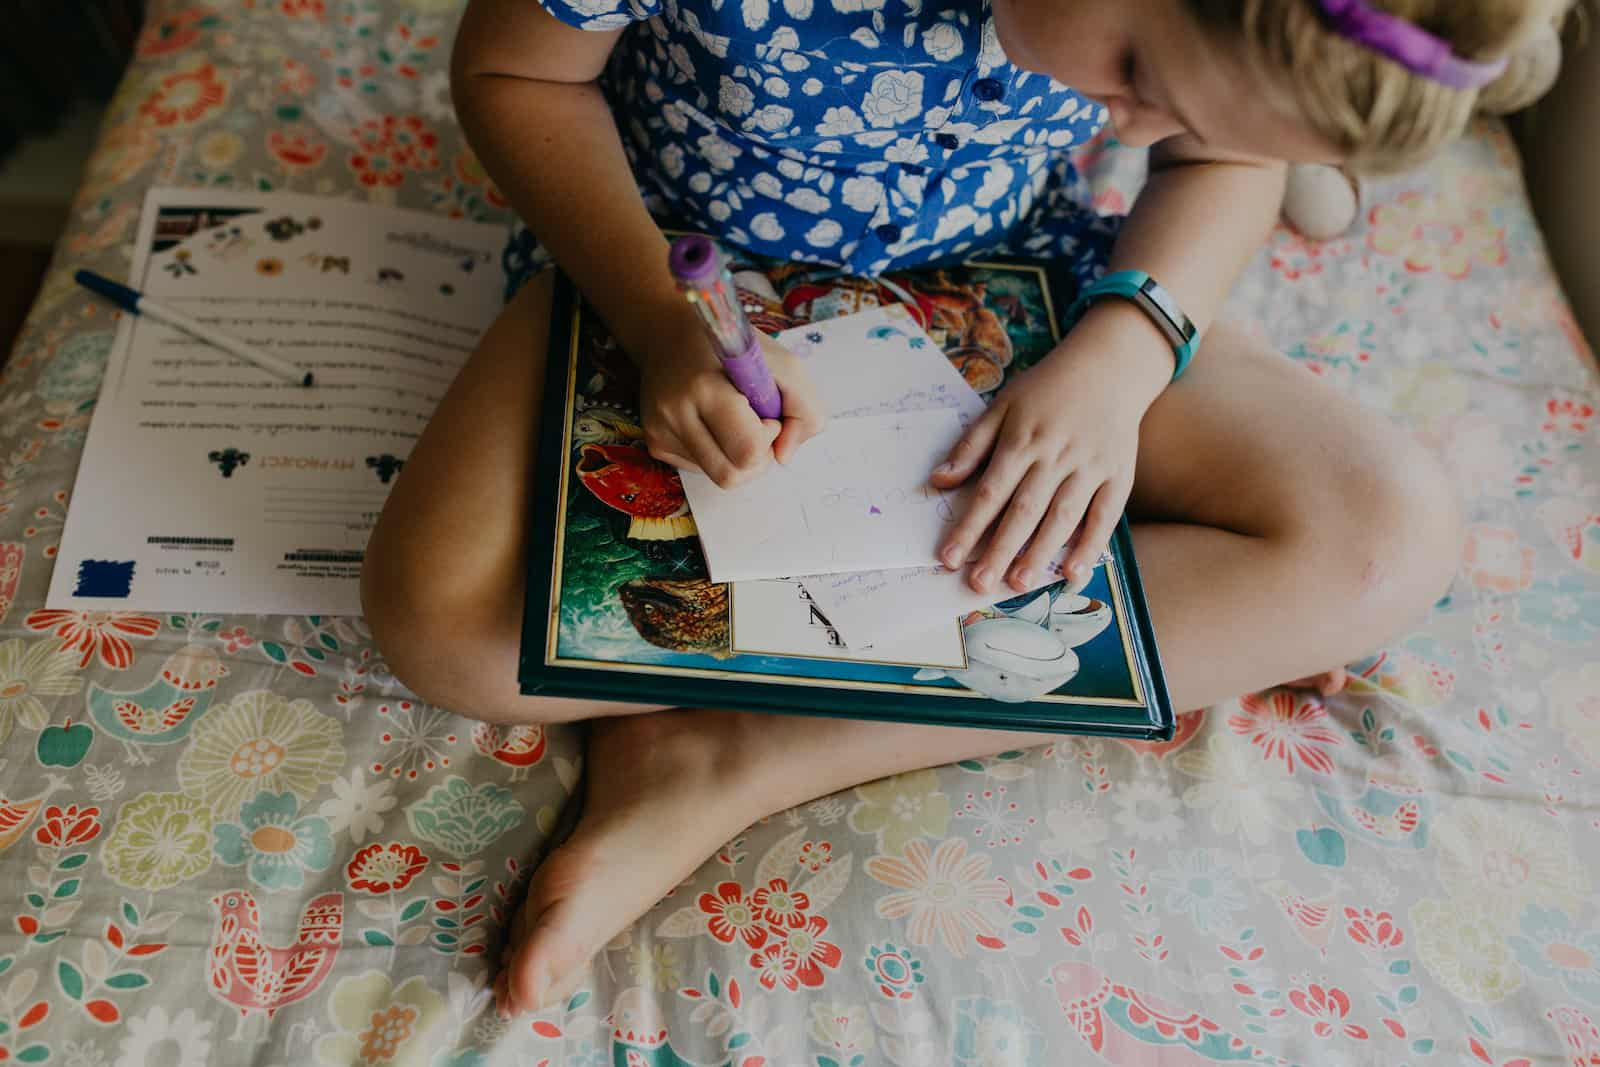 A girl with blonde hair and a blue dress on sits on her bed, legs crossed, writing a letter to the child she sponsors.